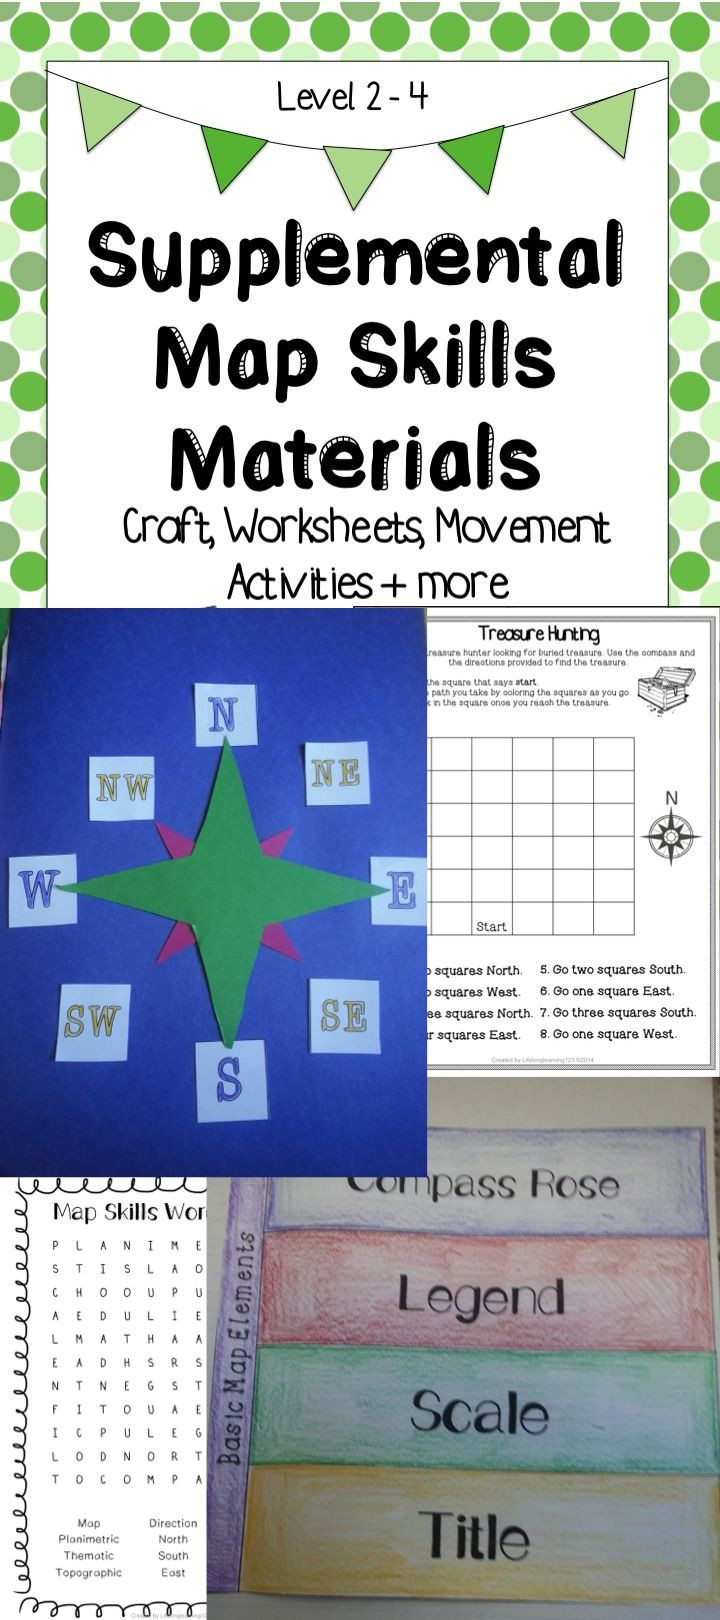 Compass Rose Worksheets Middle School Supplemental Map Skills Materials Craft Worksheets